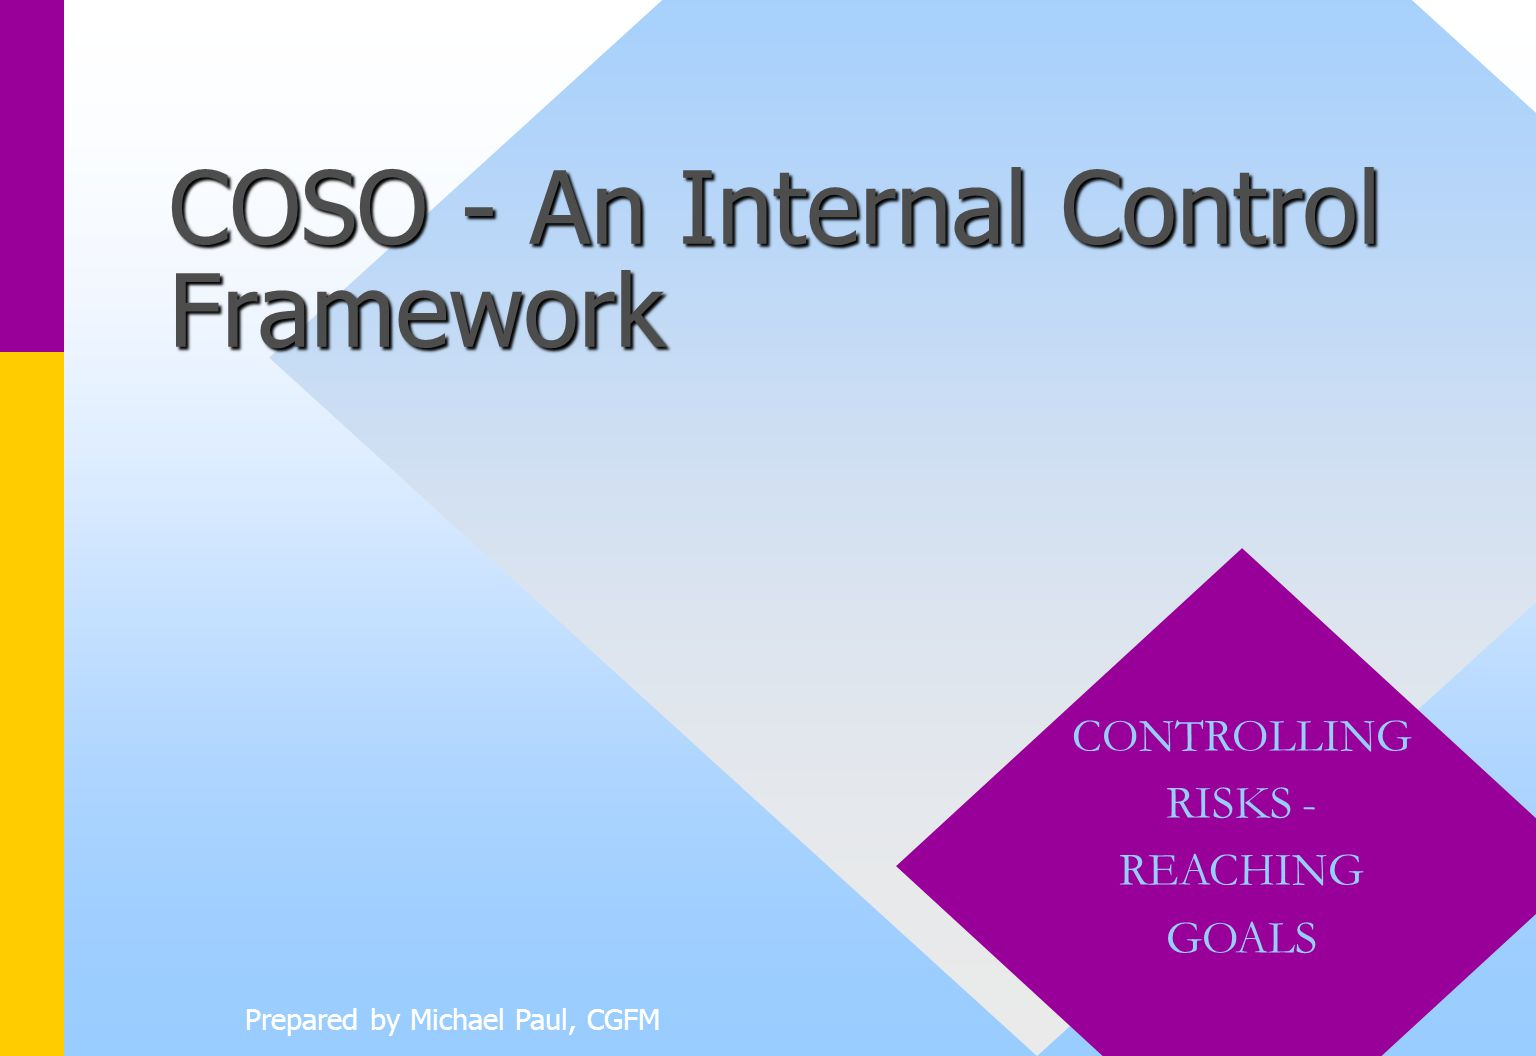 internal control risks Because of changing conditions, management needs to determine whether the internal control system continues to be relevant and able to address new risks components of the control activity internal controls rely on the principle of checks and balances in the workplace.